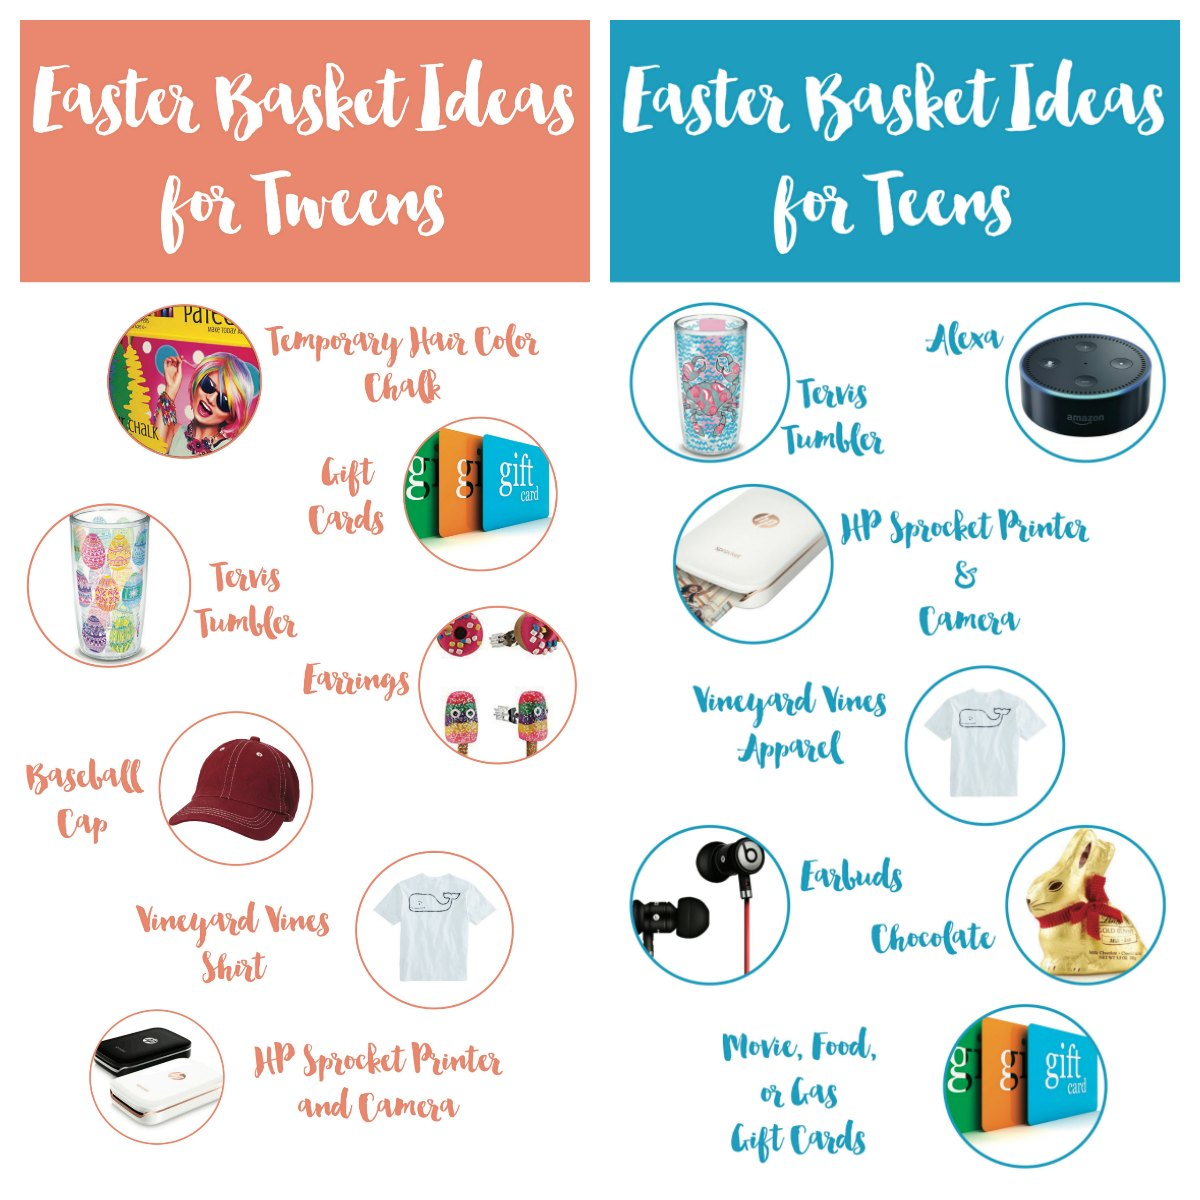 Everyday Party Magazine Easter Basket Ideas Teen #Easter #GiftGuide #Teen